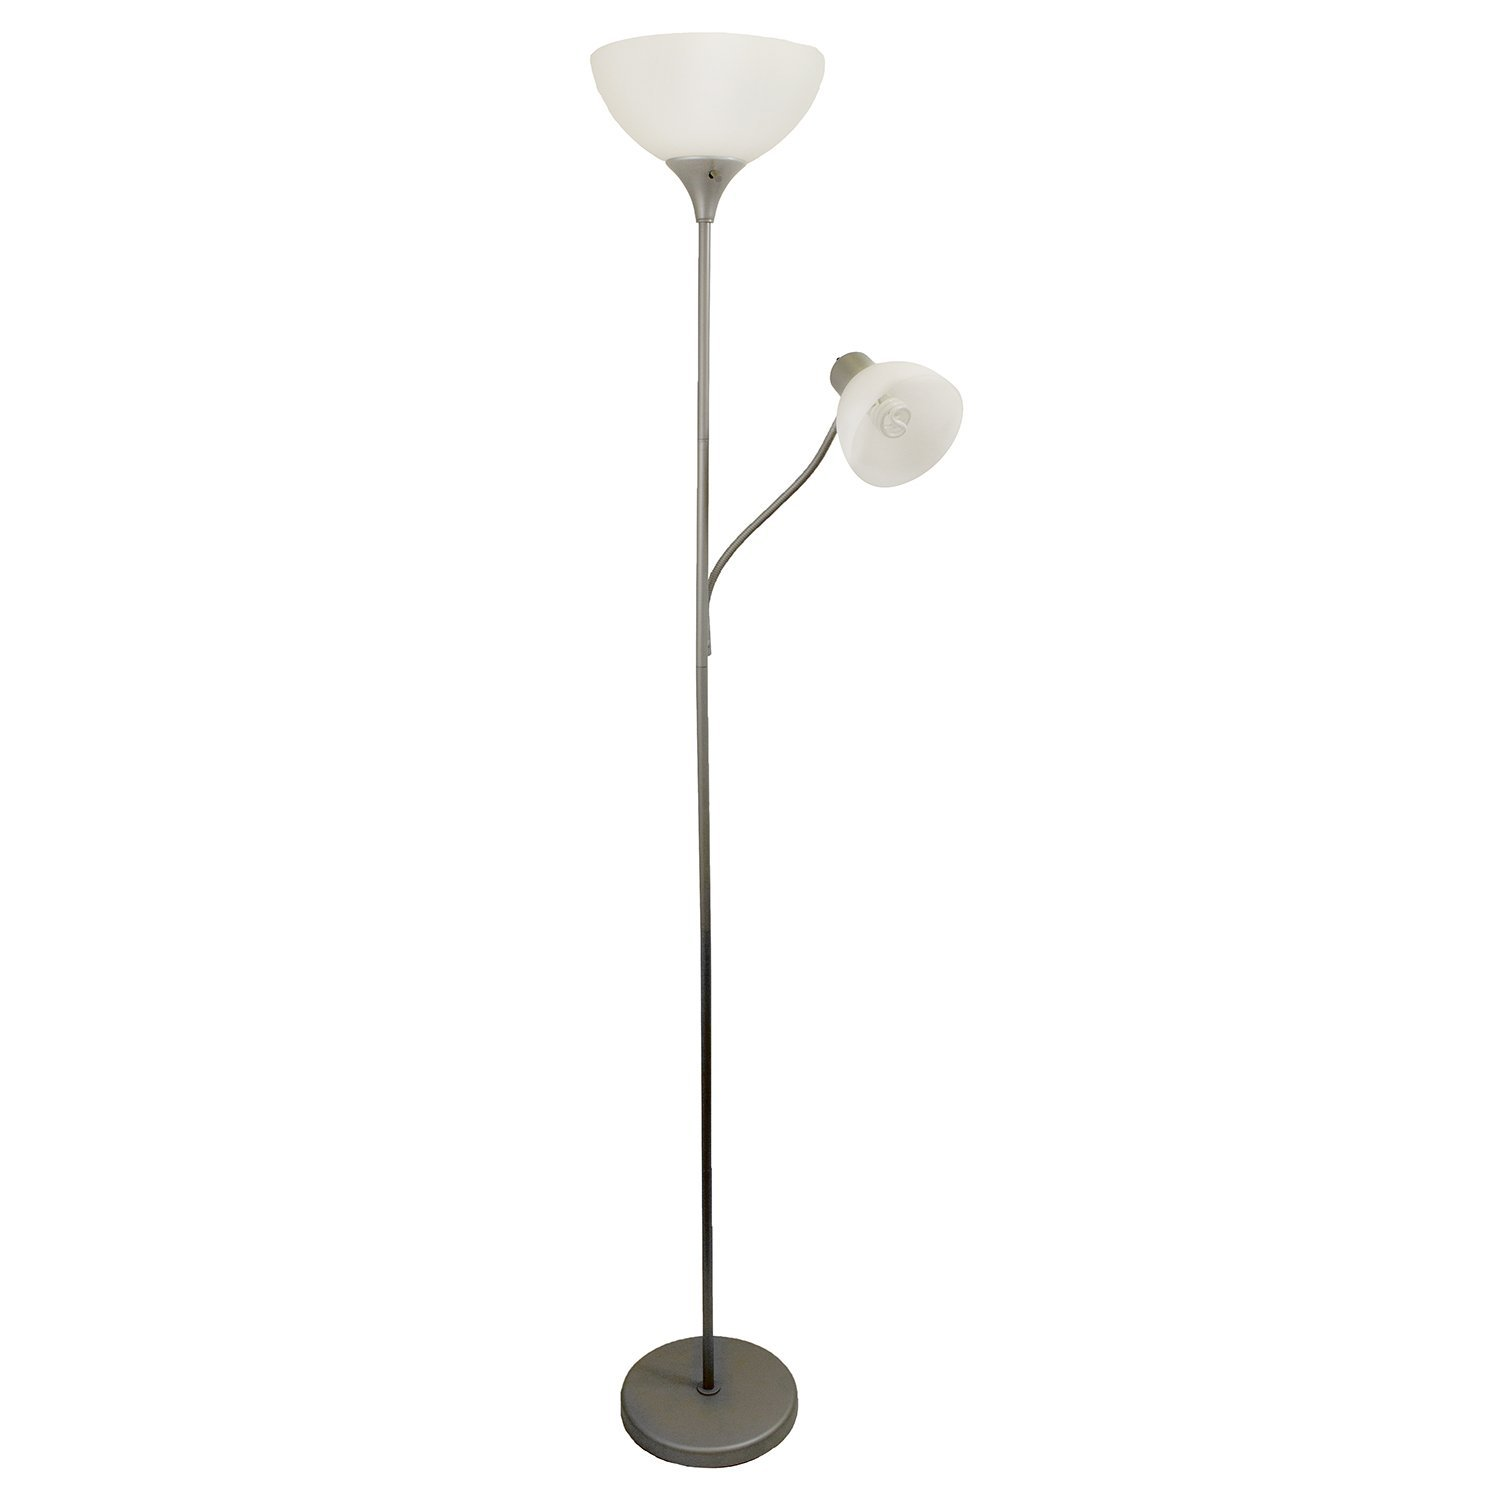 Versatility Of 300 Watts Halogen Torchiere Floor Lamps